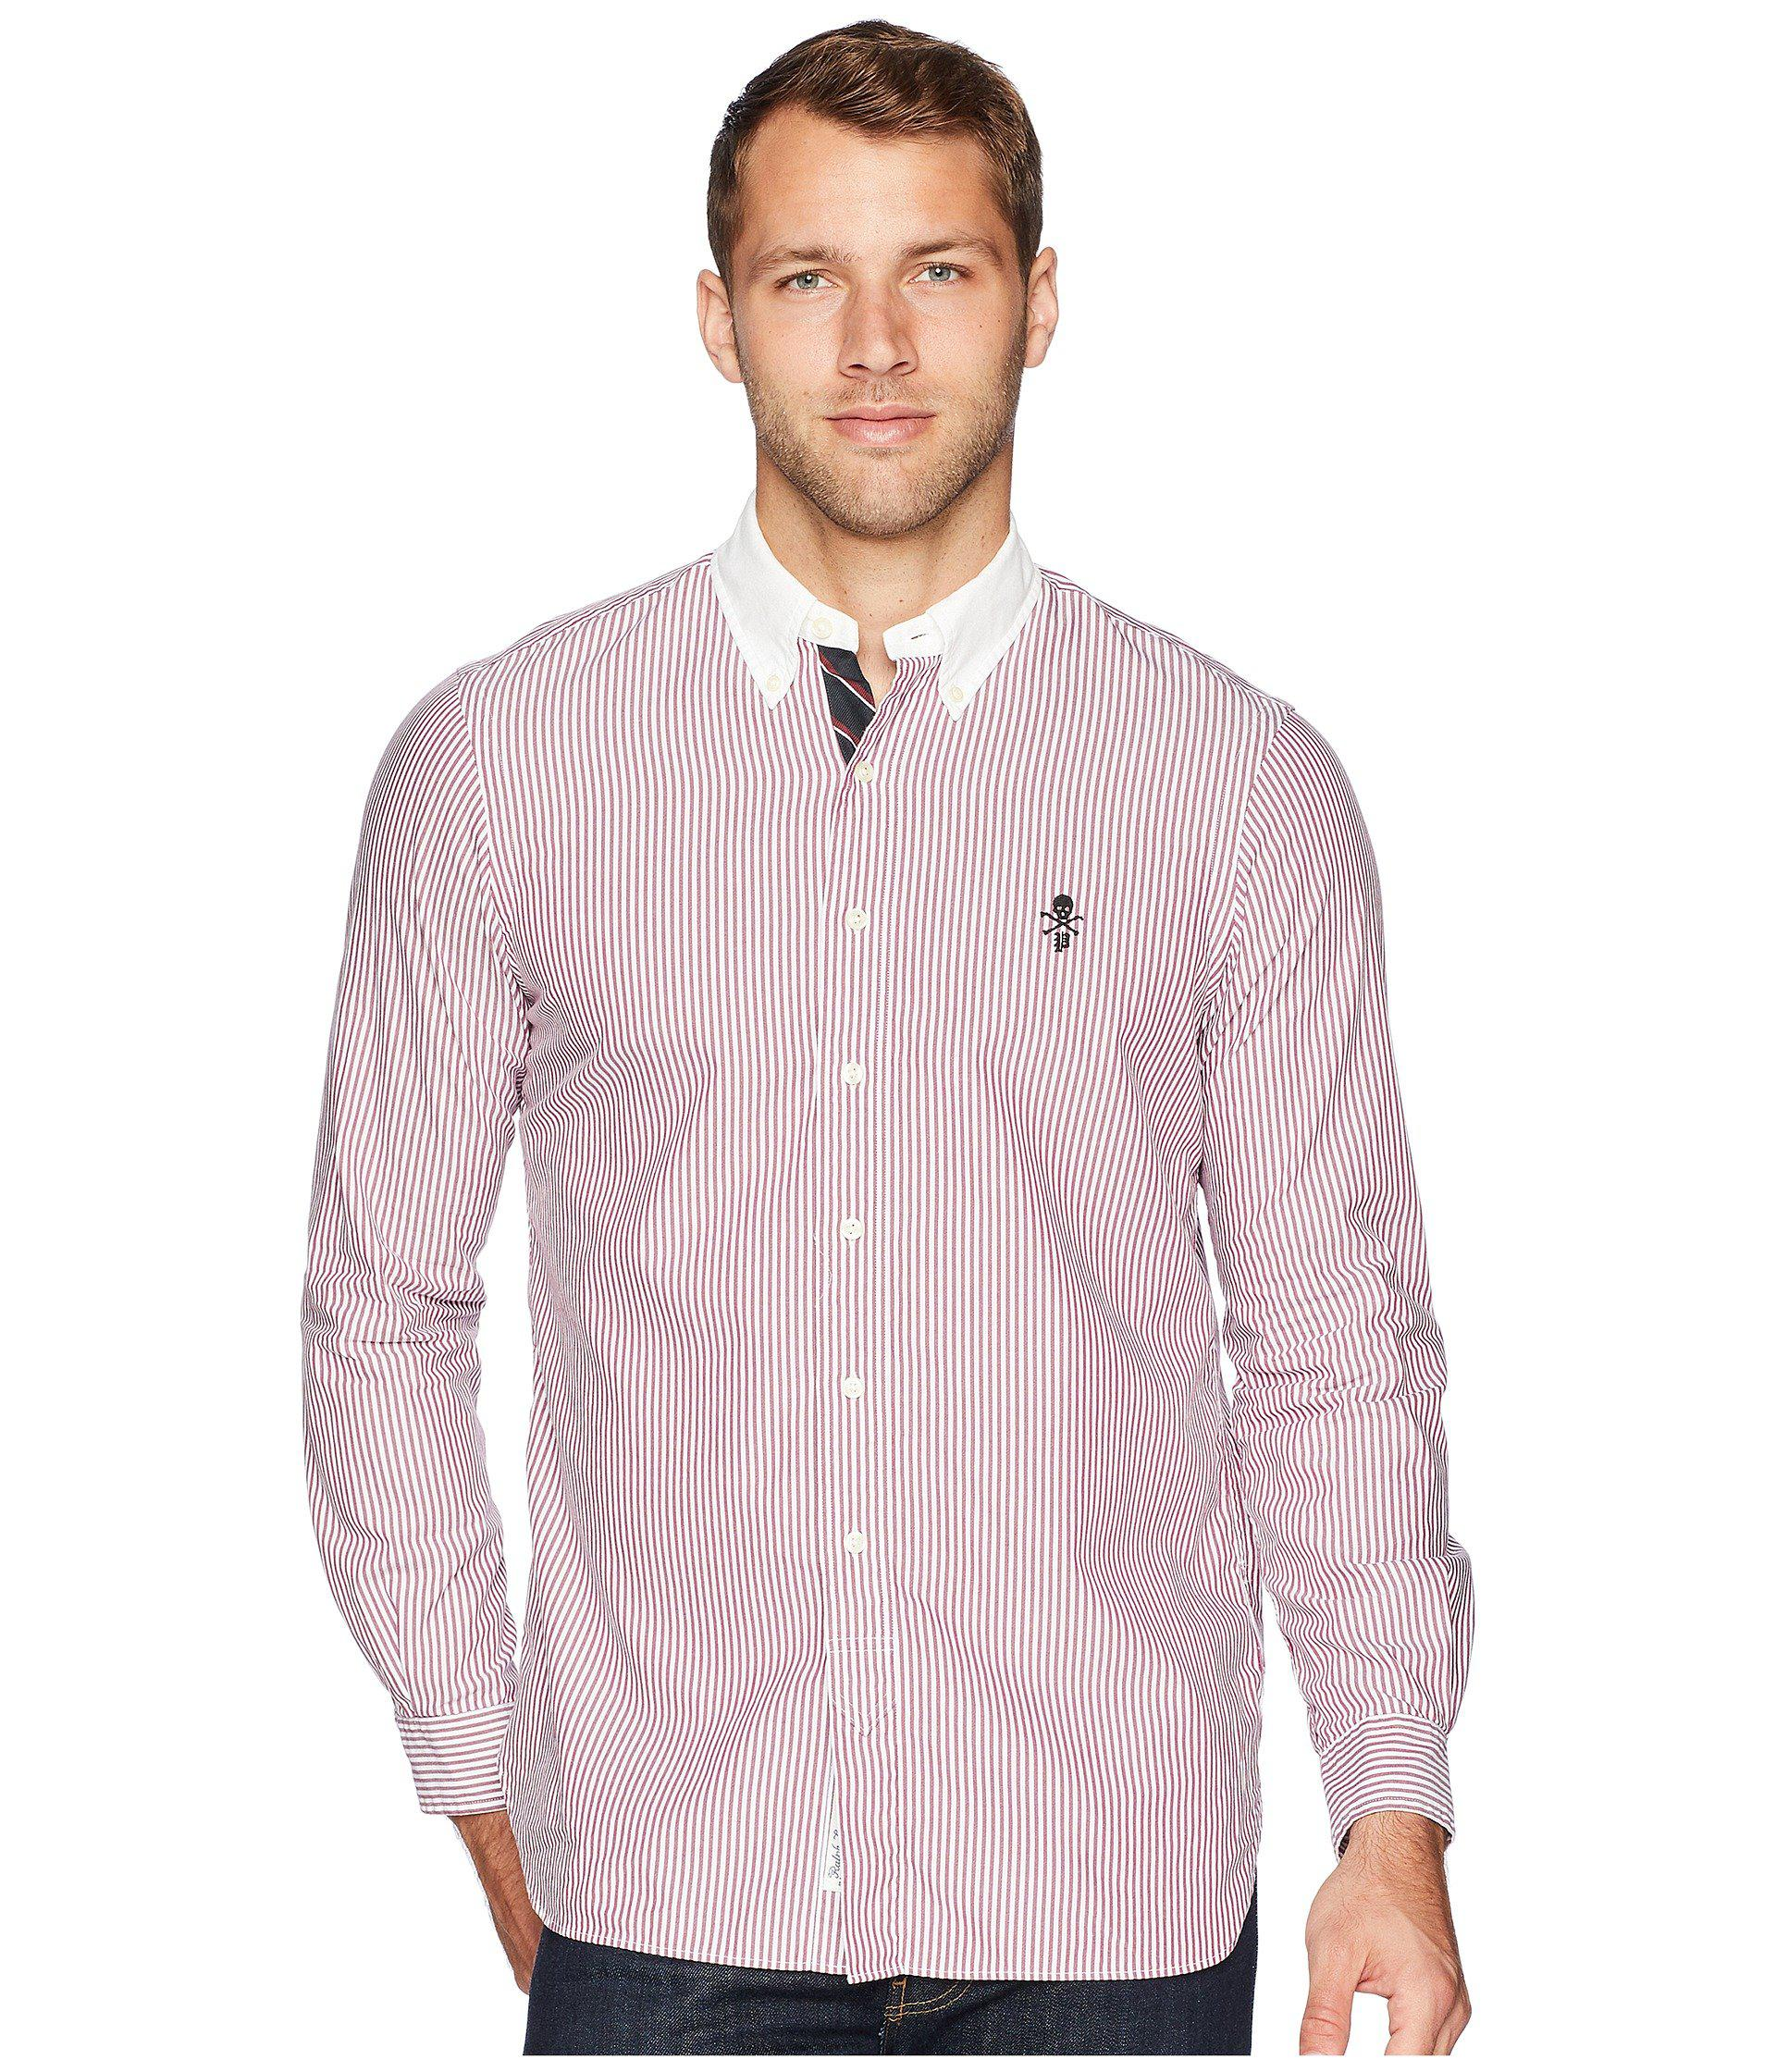 64e64fd8aaf63 Polo Ralph Lauren. Purple Lightweight Oxford Striped Sport Shirt ...